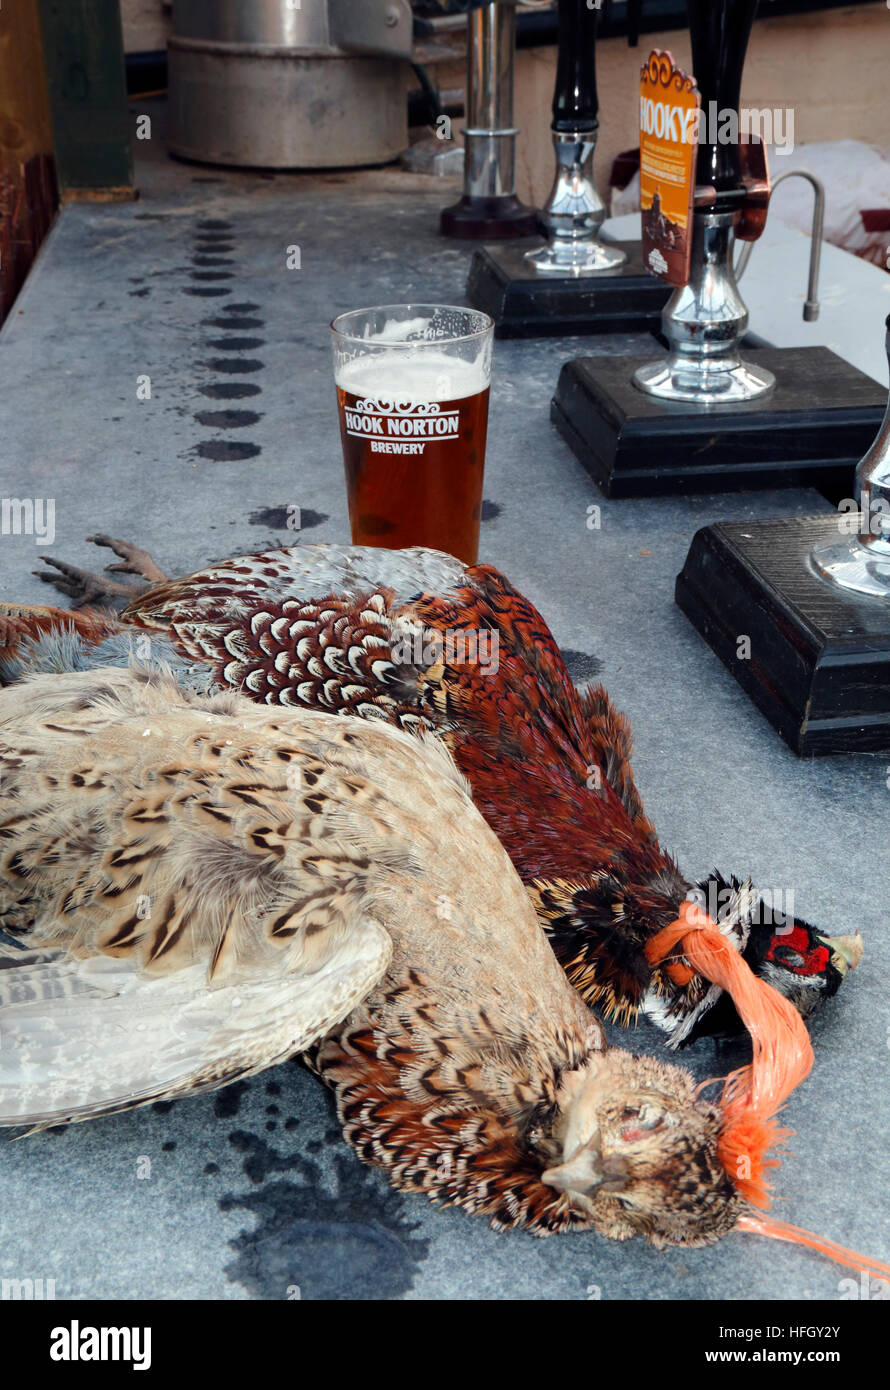 A pair of dead pheasants on a bar in a public house in Cropredy, Oxfordshire - Stock Image